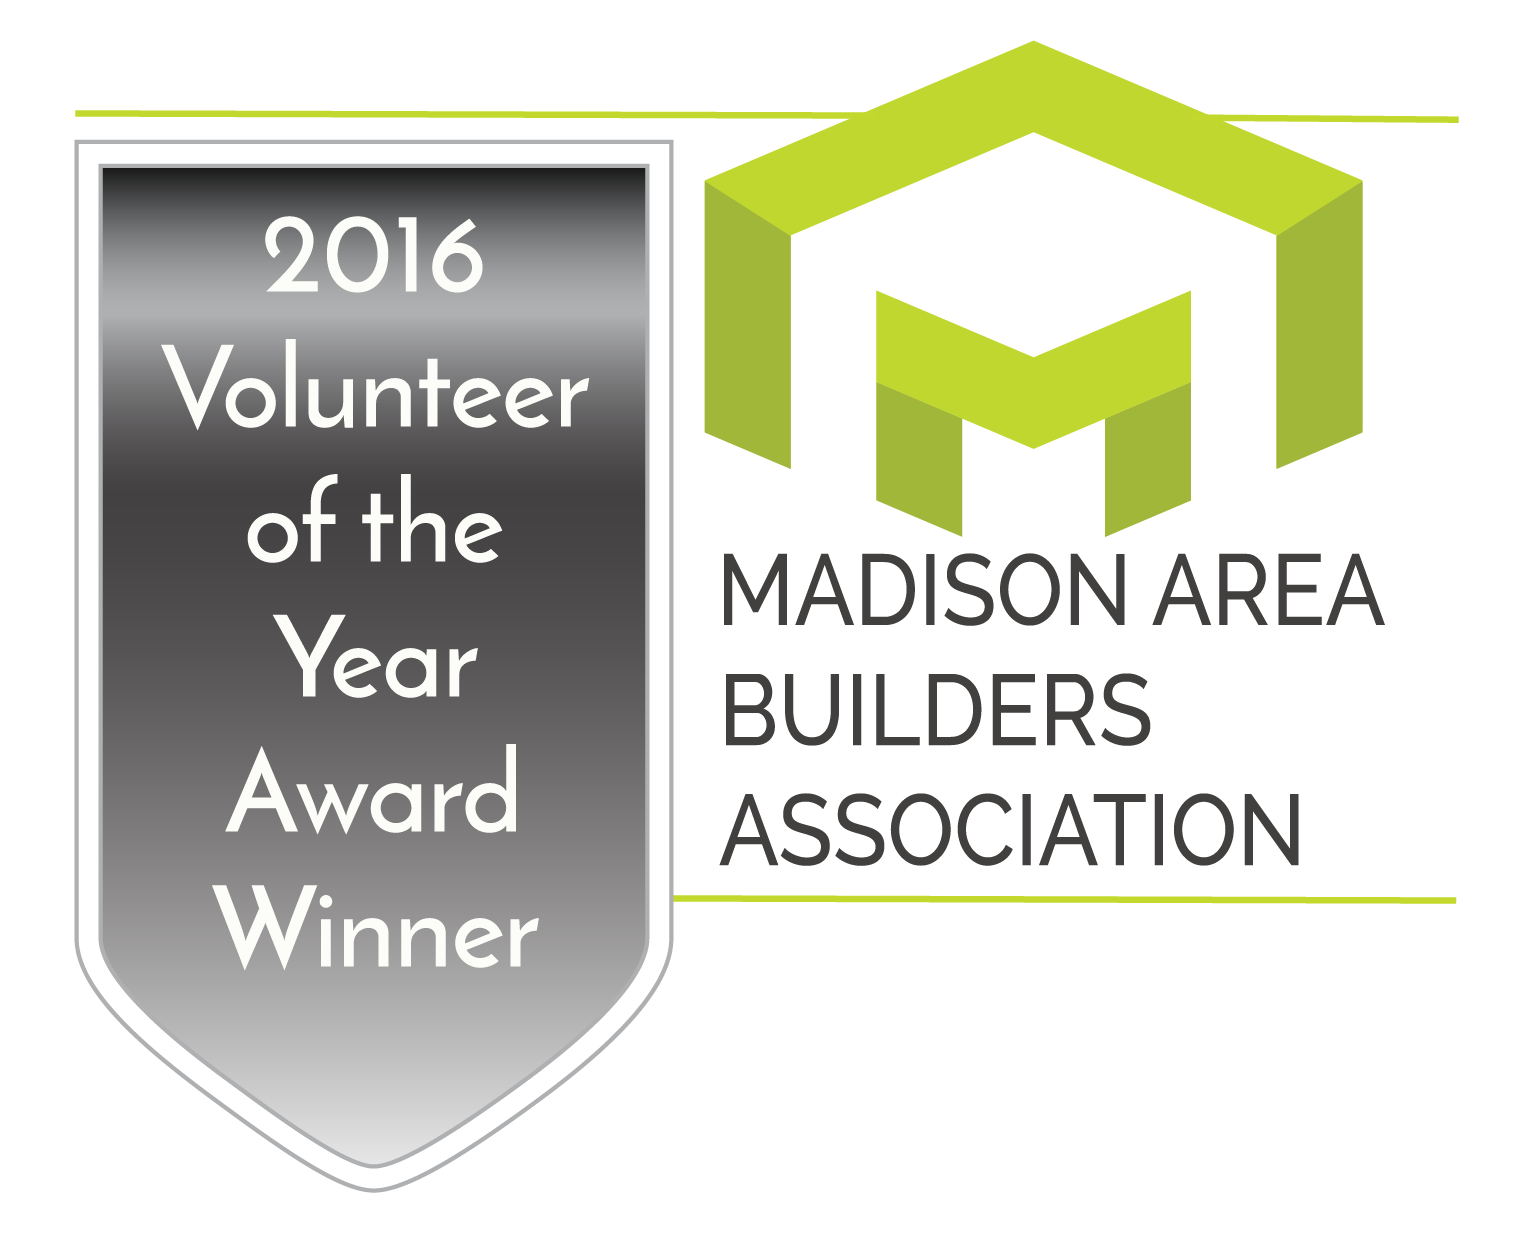 Volunteer of the Year 2016